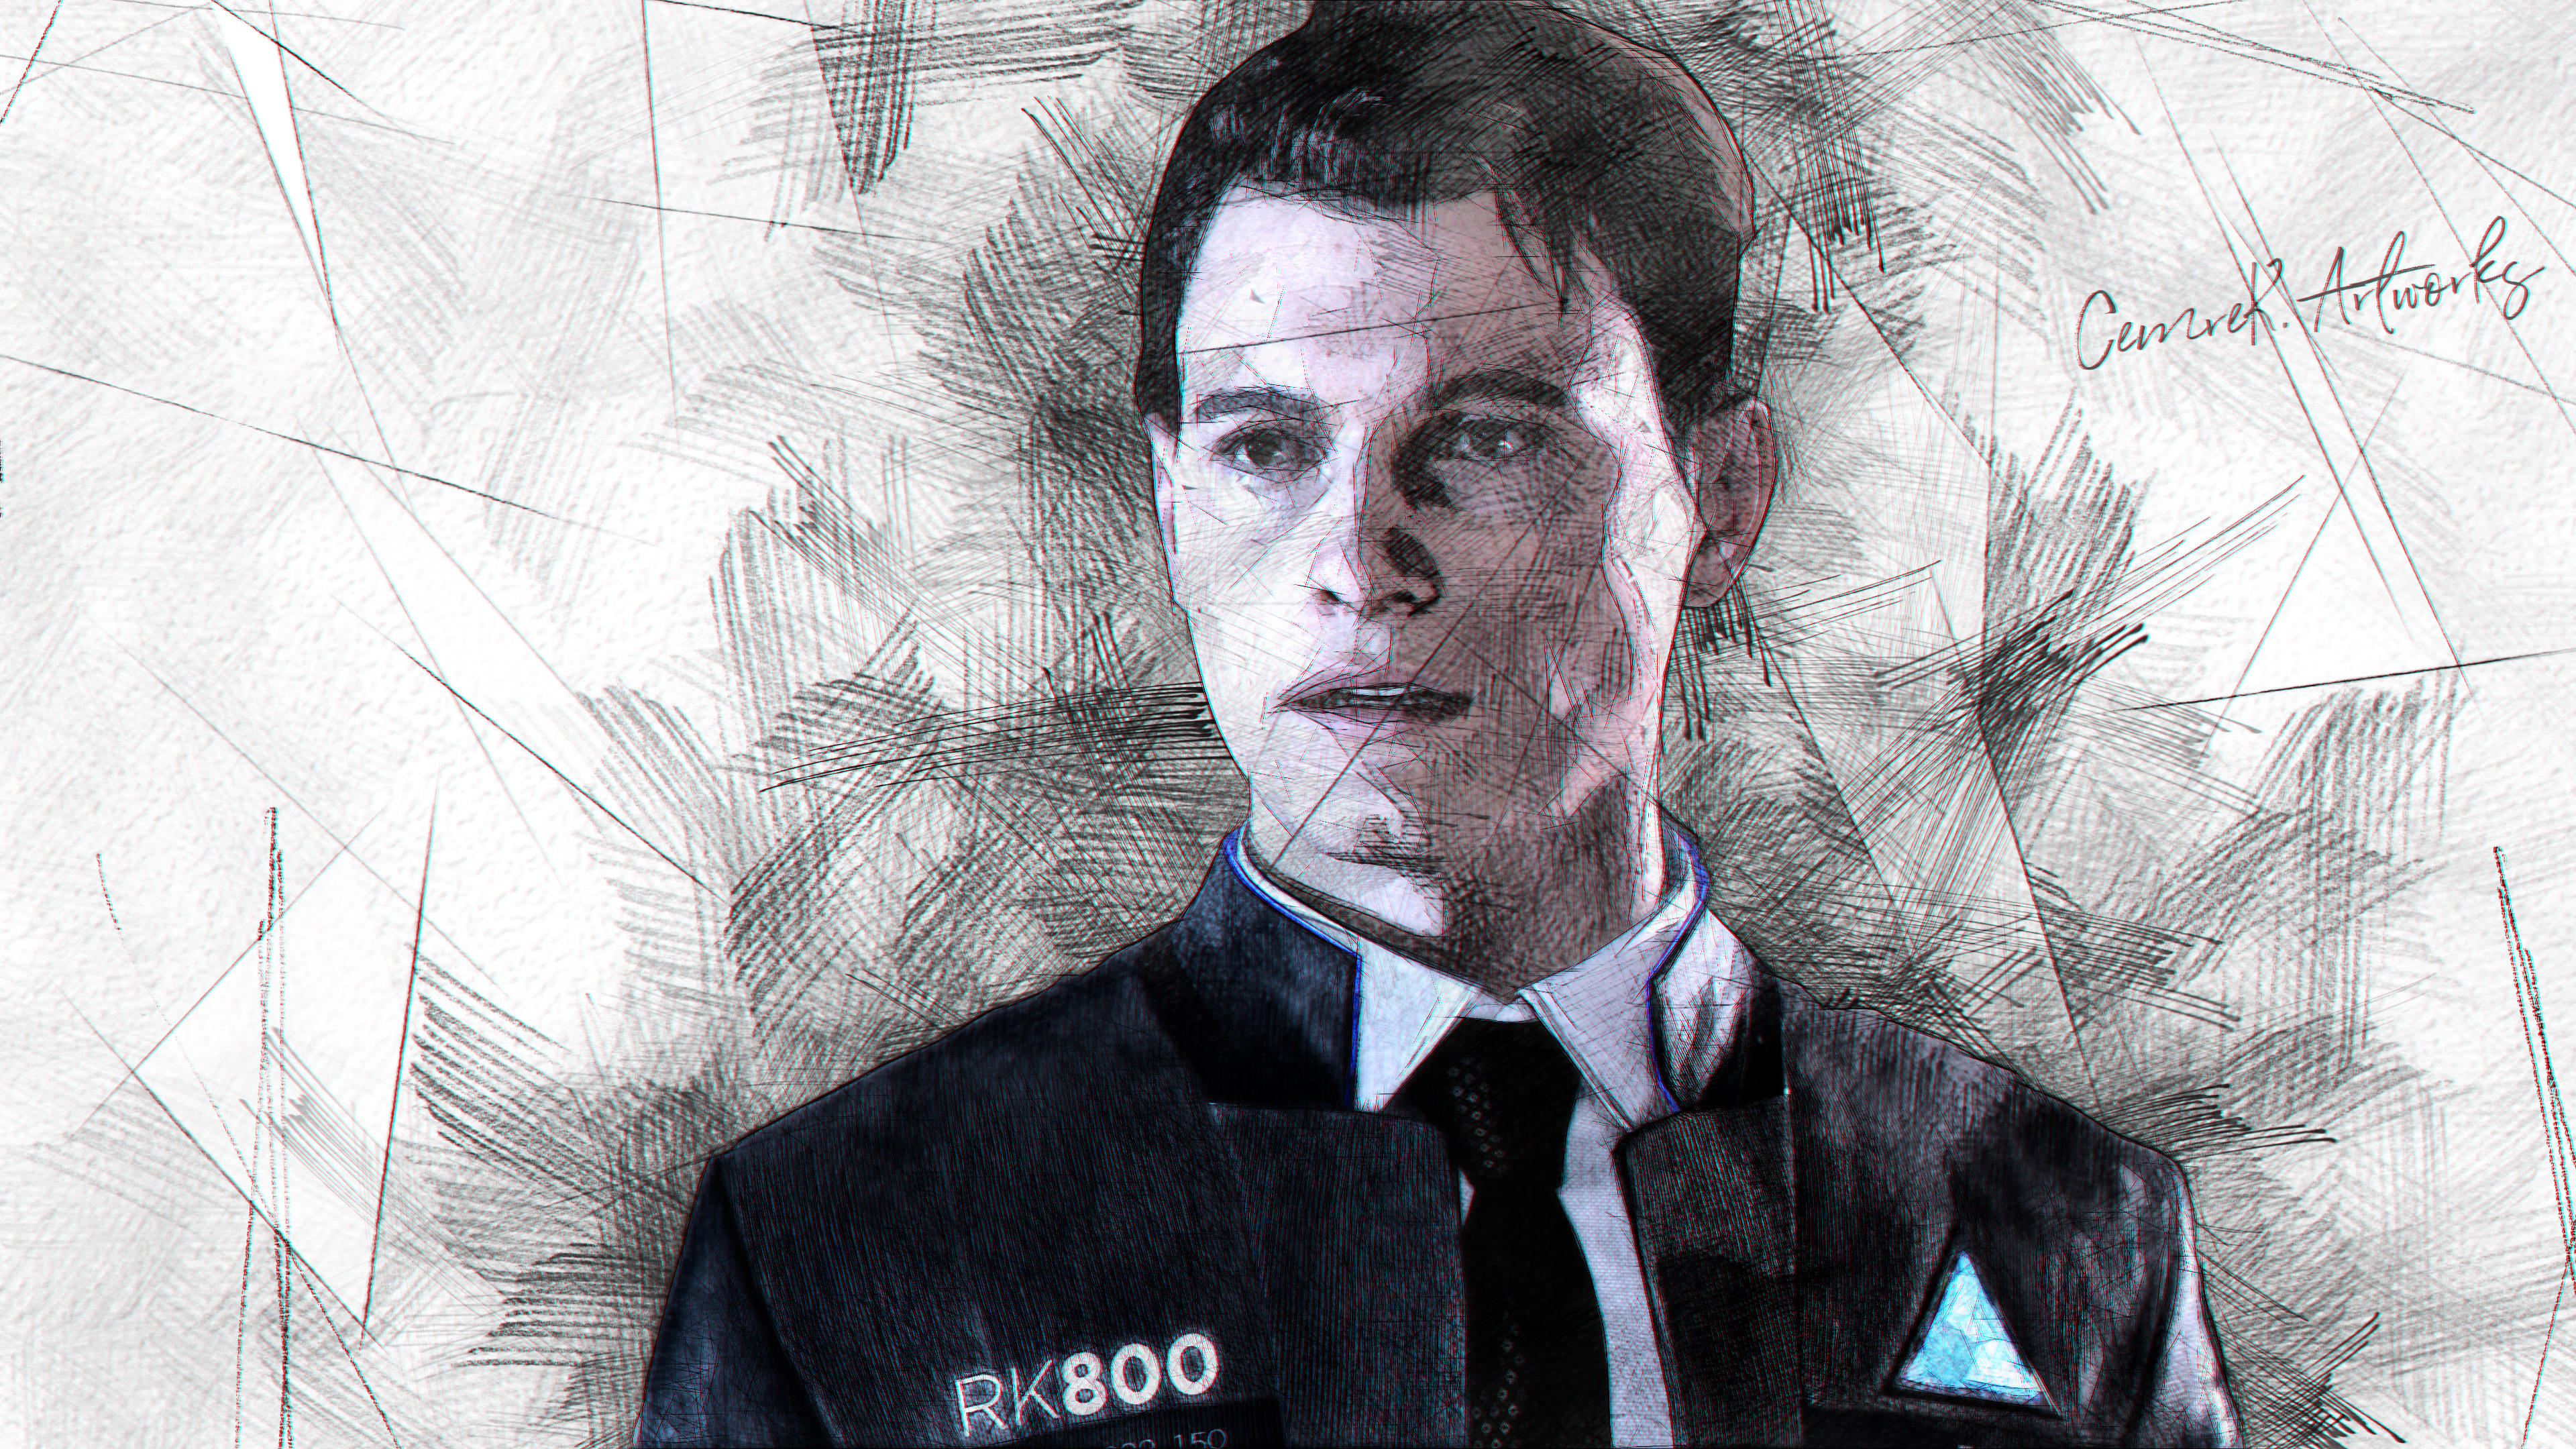 Connor Detroit Become Human Wallpaper: Detroit Become Human Connor Drawing By Cemreksdmr On